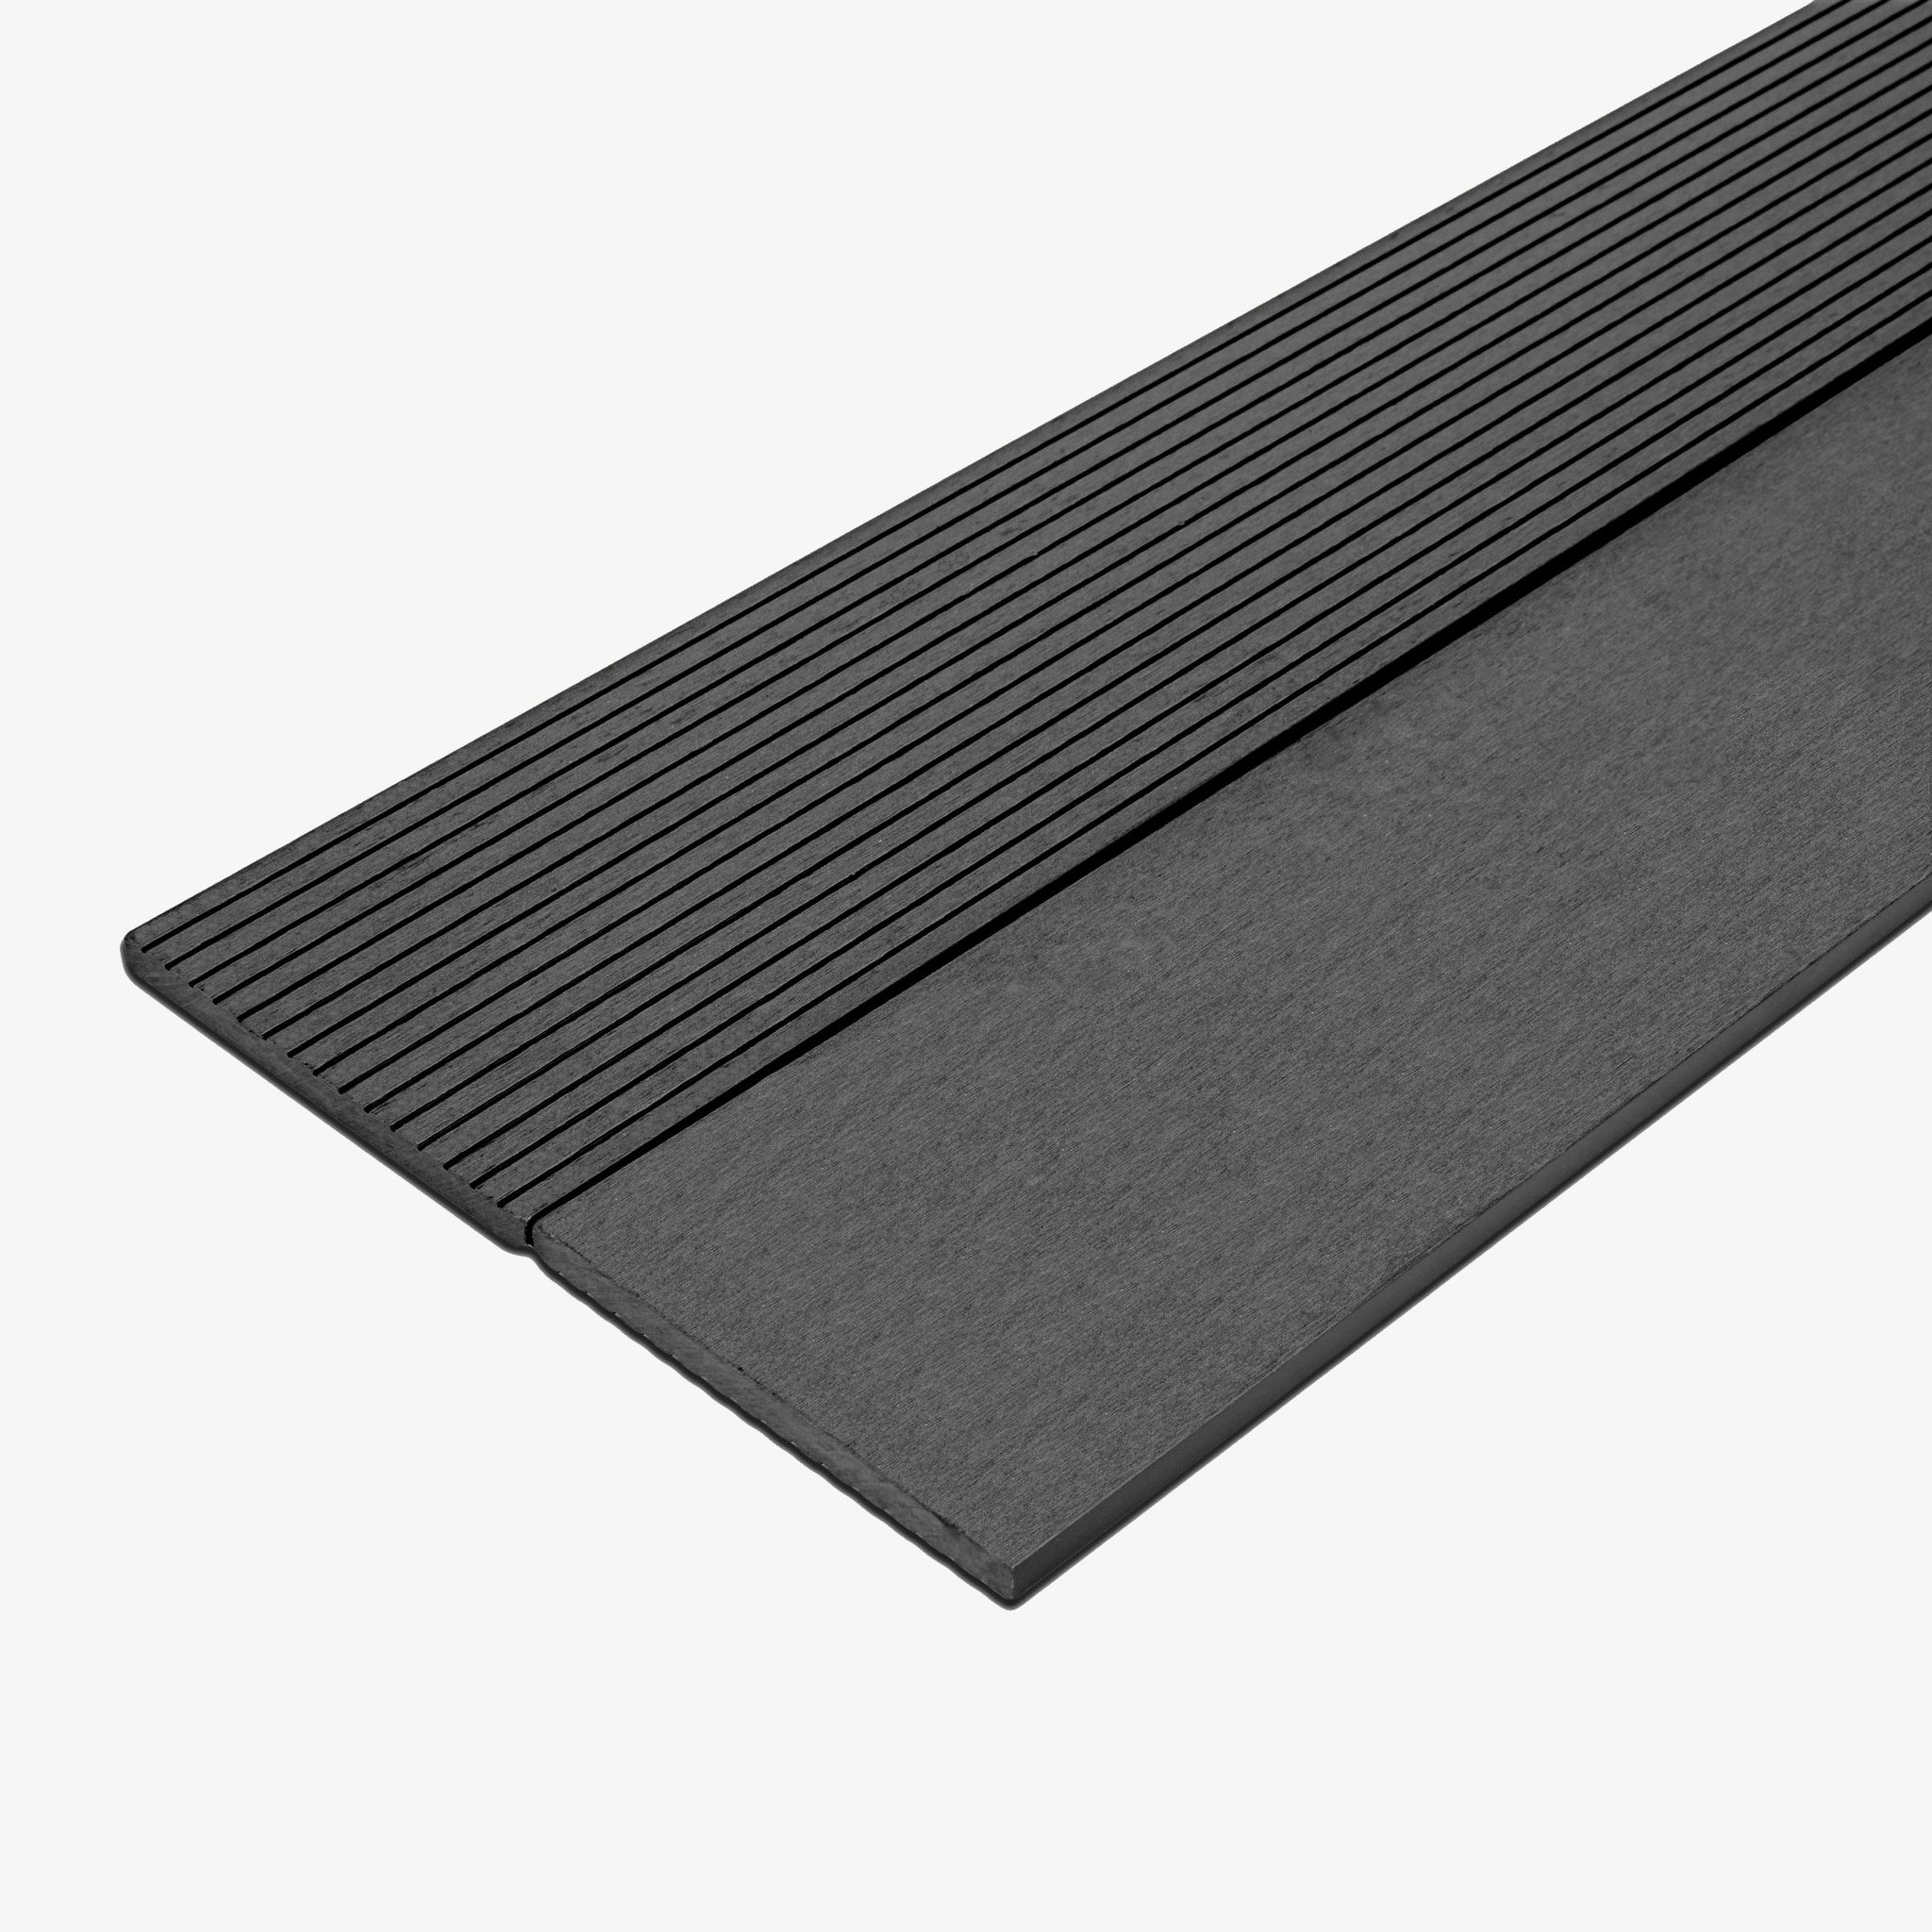 Composite Deck Fascia Board - Granite | HYPERION Decking